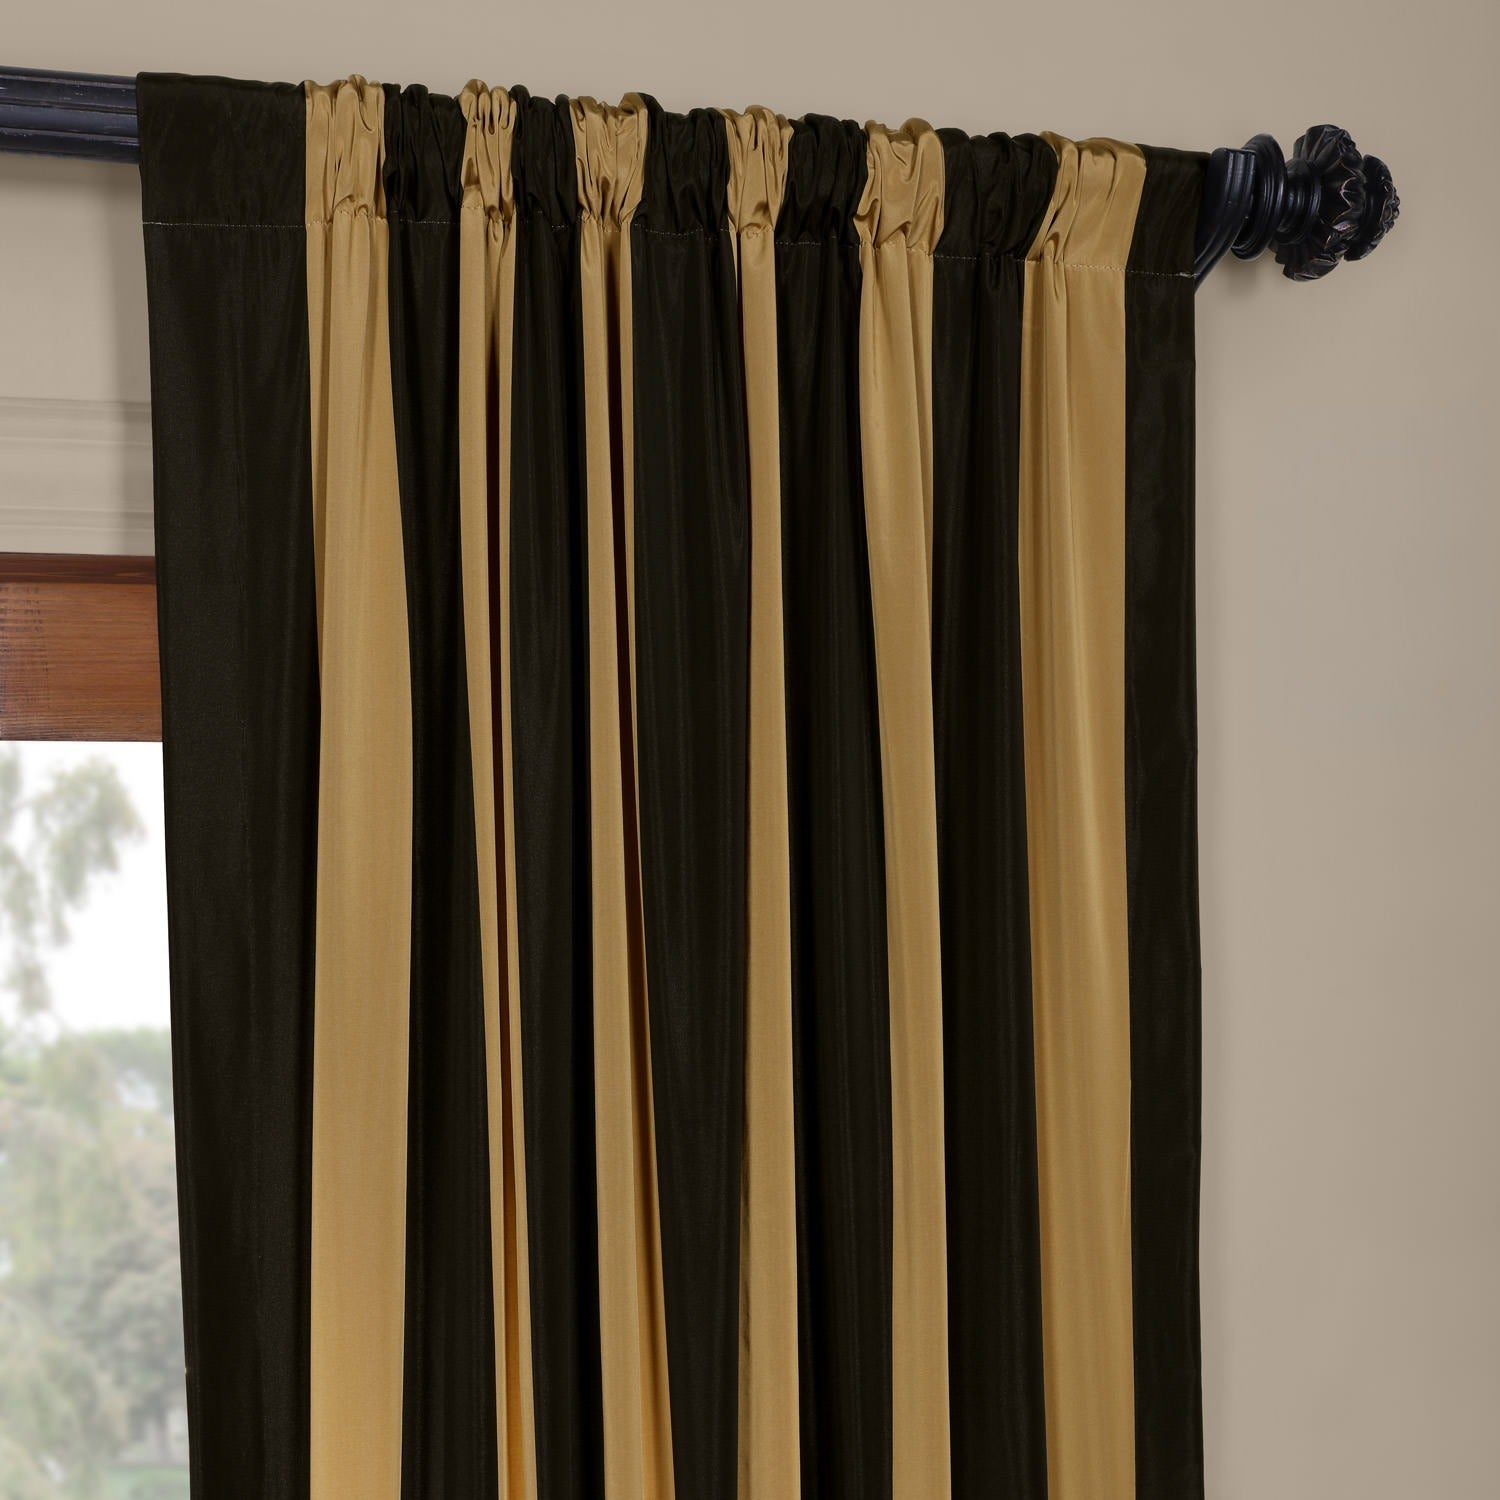 simple black wall room linen wood and curtains gold beautify single panel decoration using two metal divine with image curtain awesome beige living ideas light your livi of brown panels for including rods